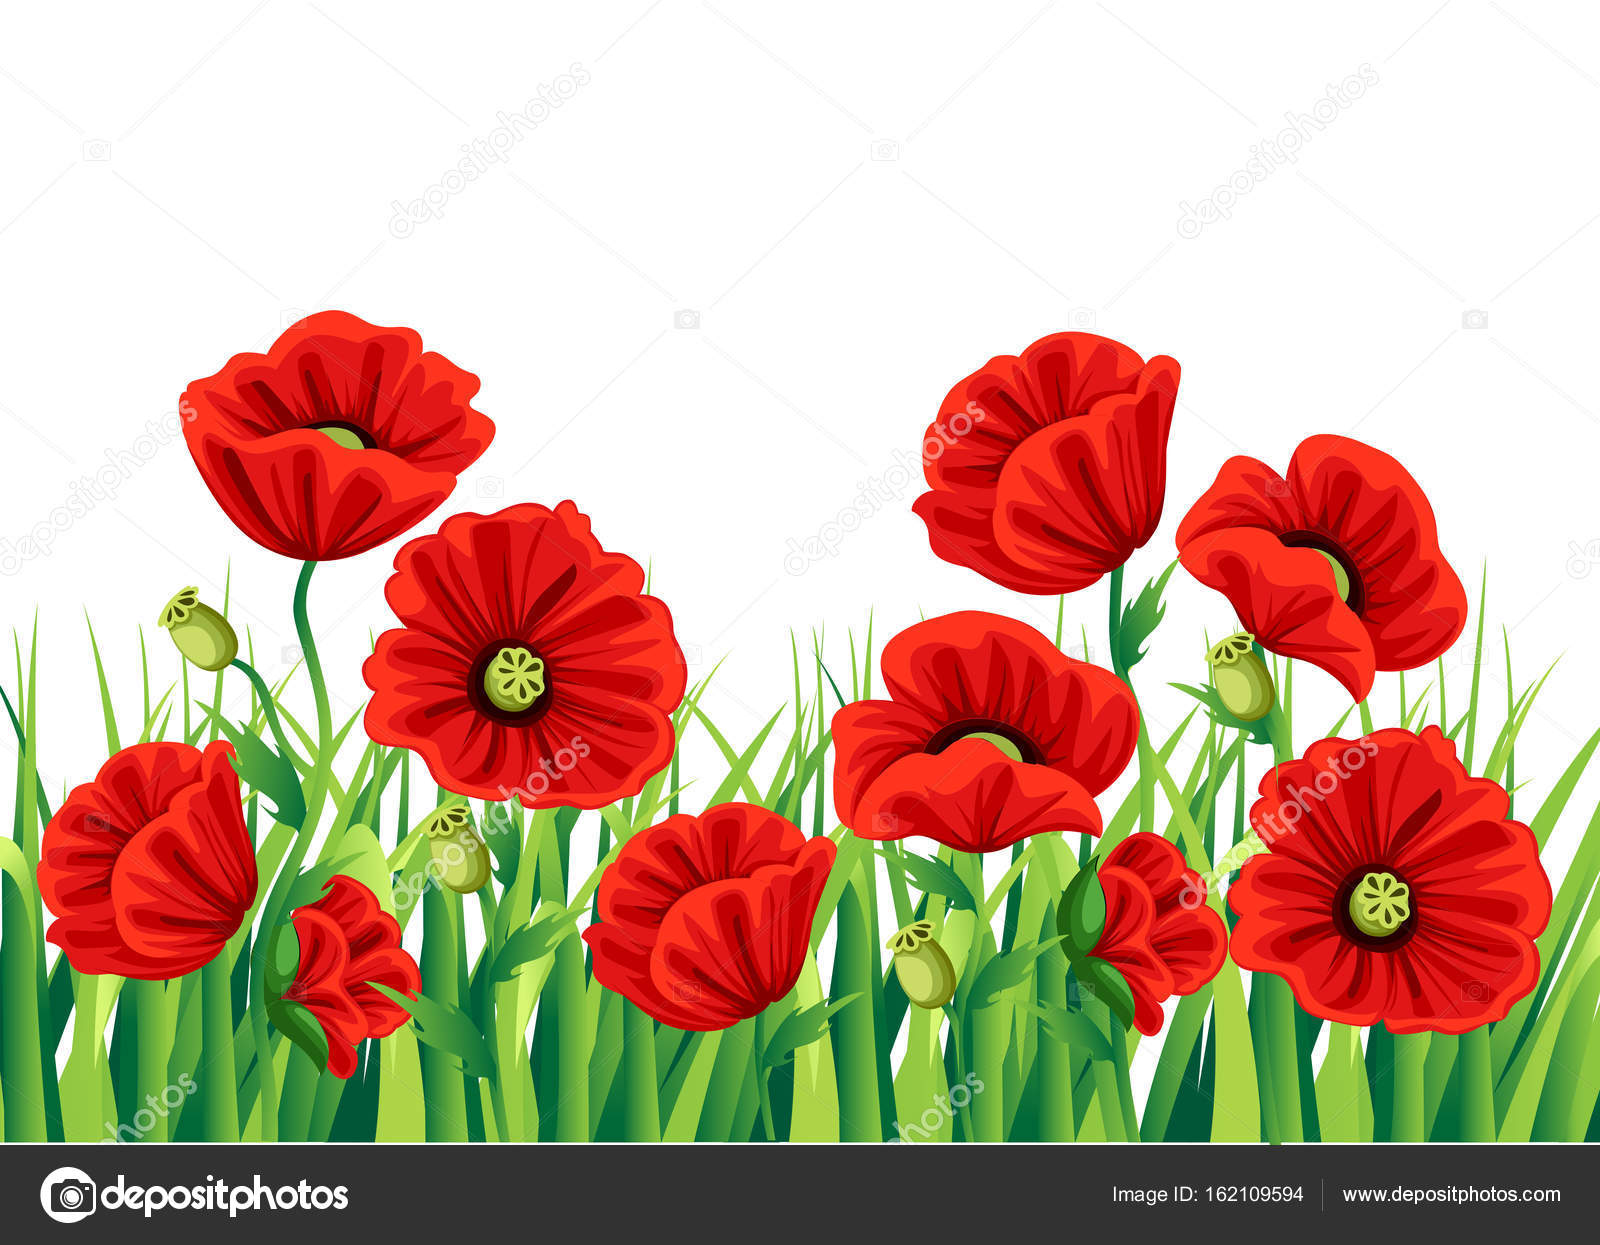 Red poppy flower isolated on white background vector red romantic red poppy flower isolated on white background vector red romantic poppy flowers and grass mightylinksfo Choice Image